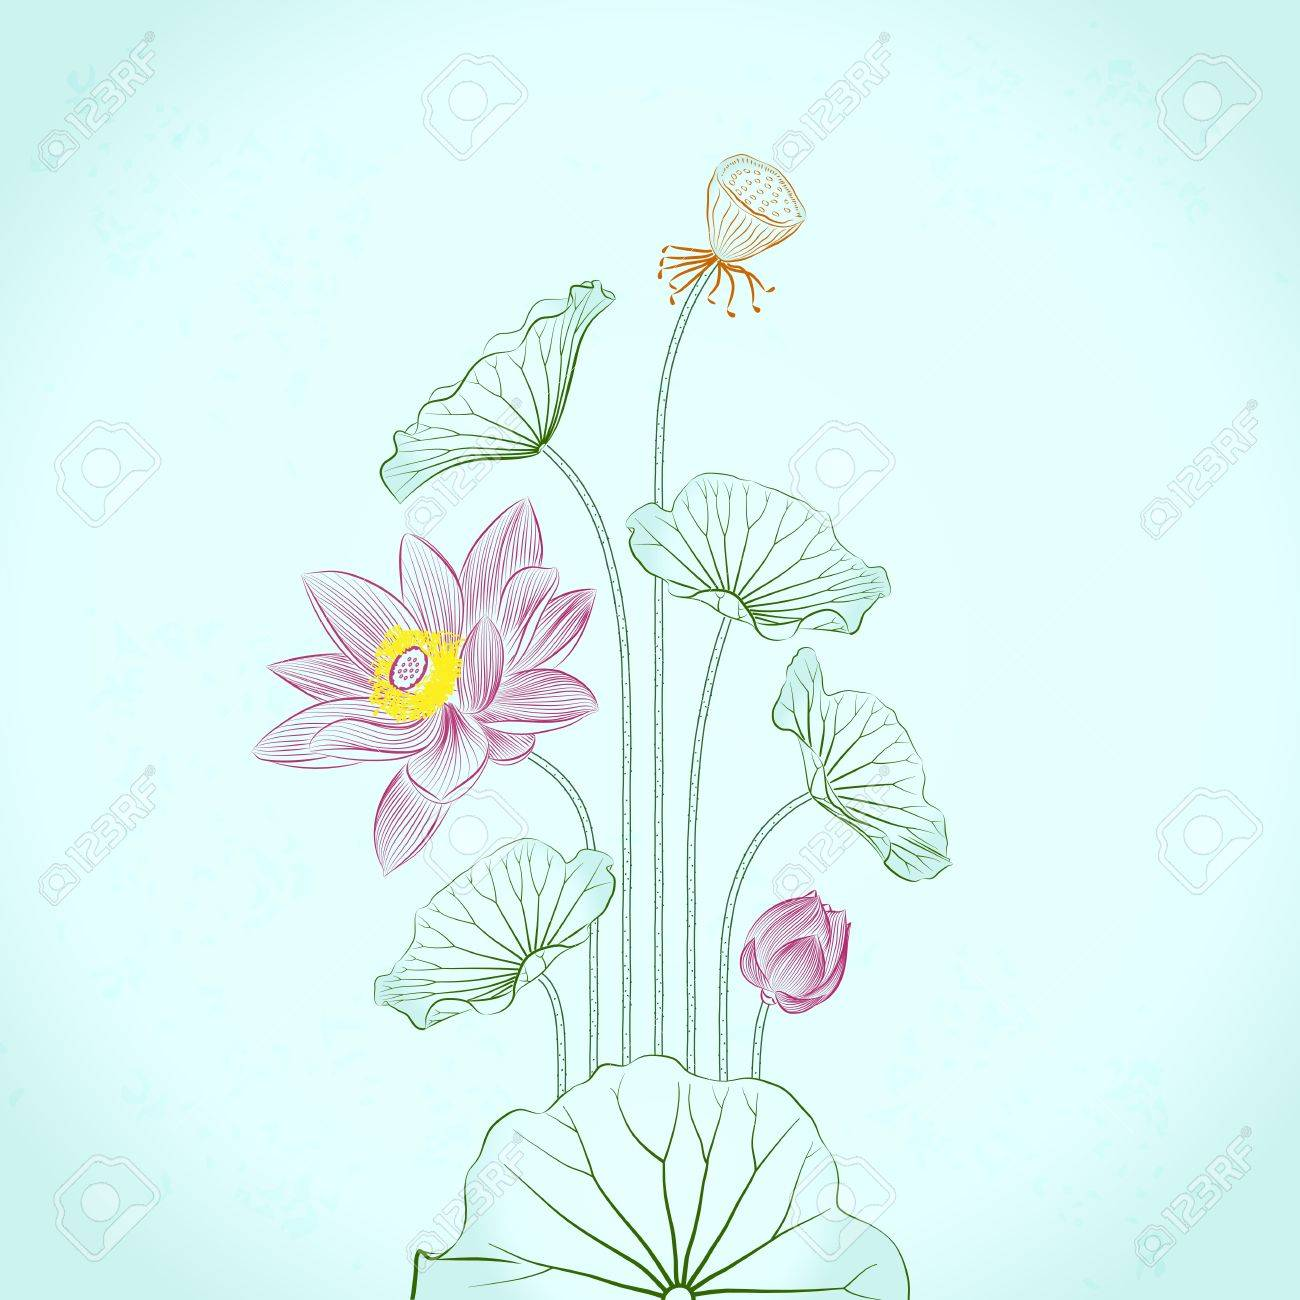 Lotus Painting, line drawing in traditional ink and brush style Stock Vector - 15232887